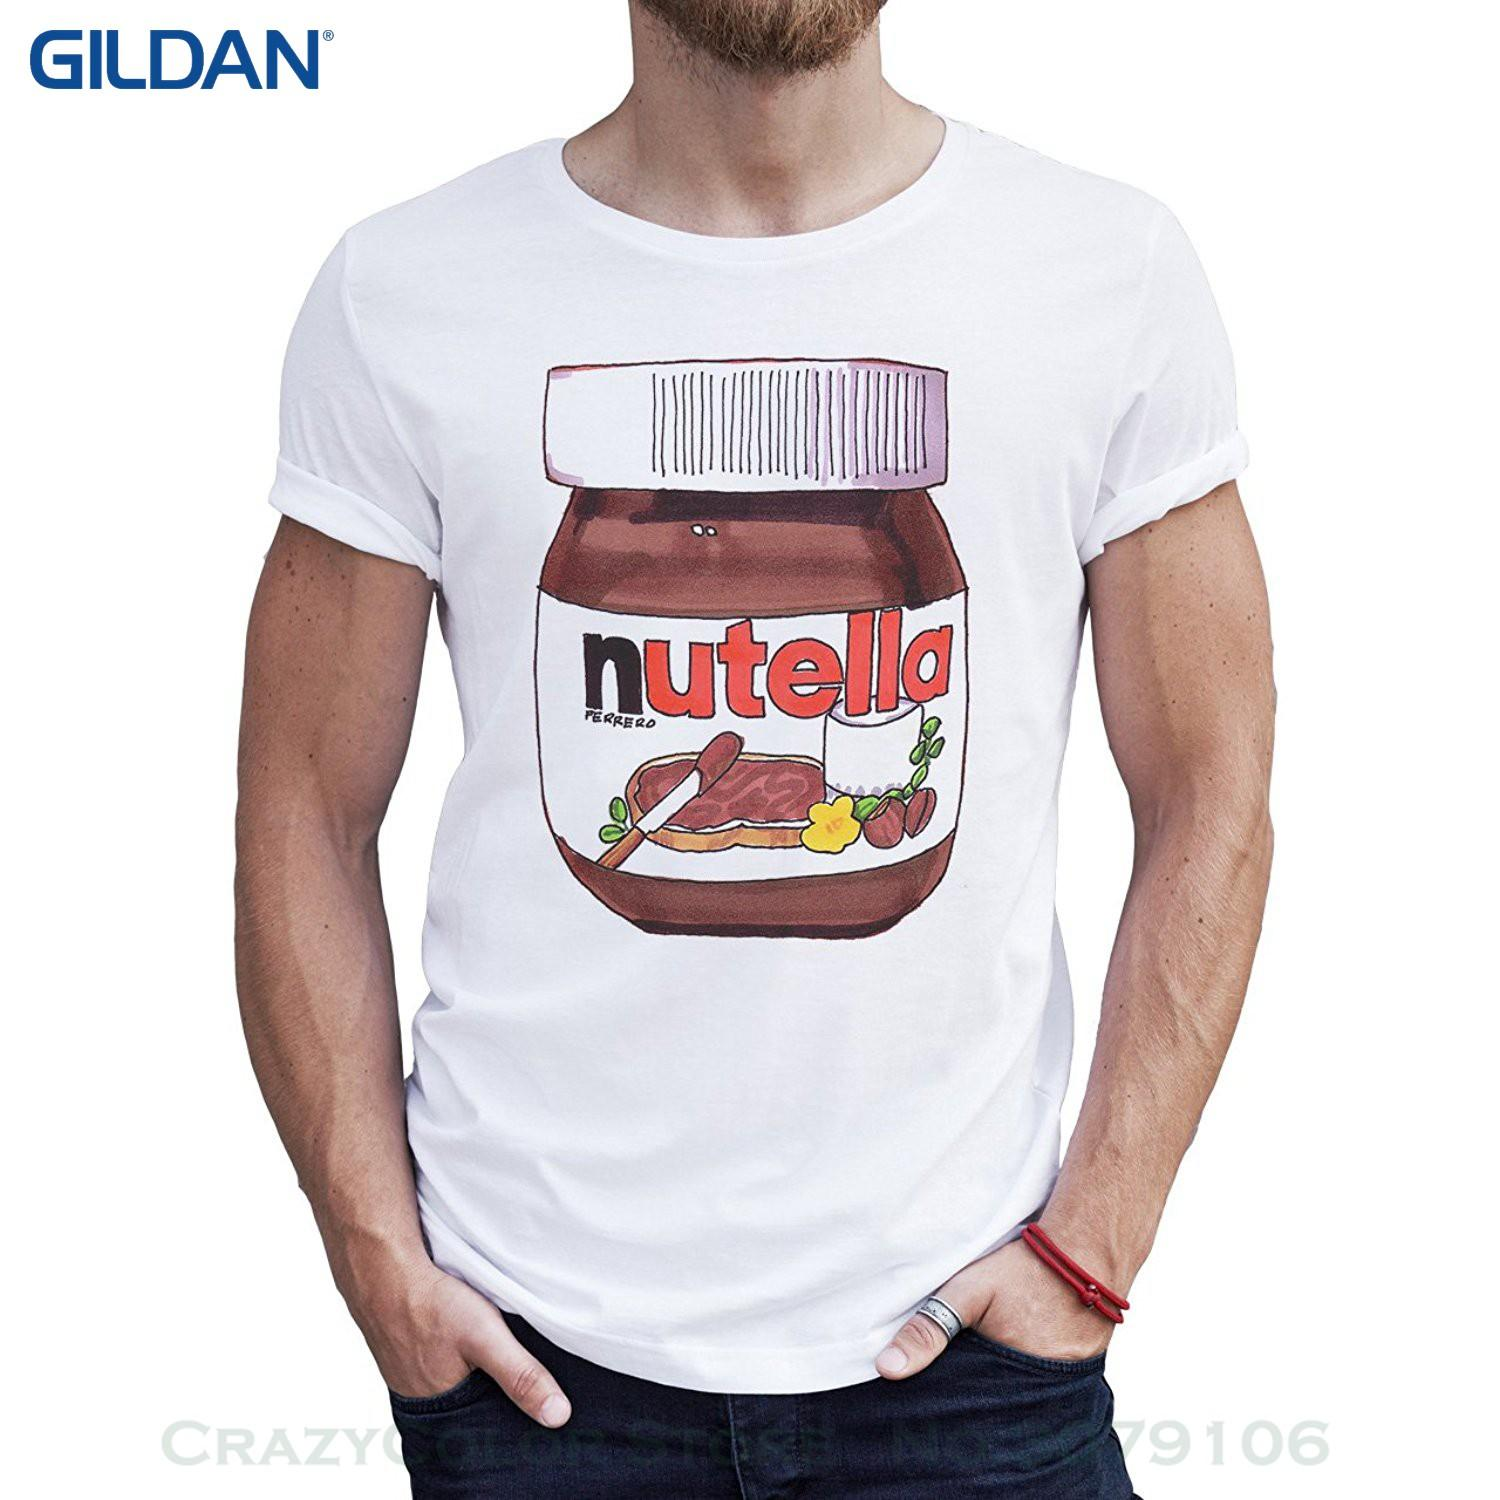 47fa0bf19 100% Cotton T Shirts Brand Clothing Tops Tees Nutella Jar Drawing Realistic  Like In Your Fridge Quality Mens T Shirt 24 Hour T Shirt Rude Tshirts From  ...